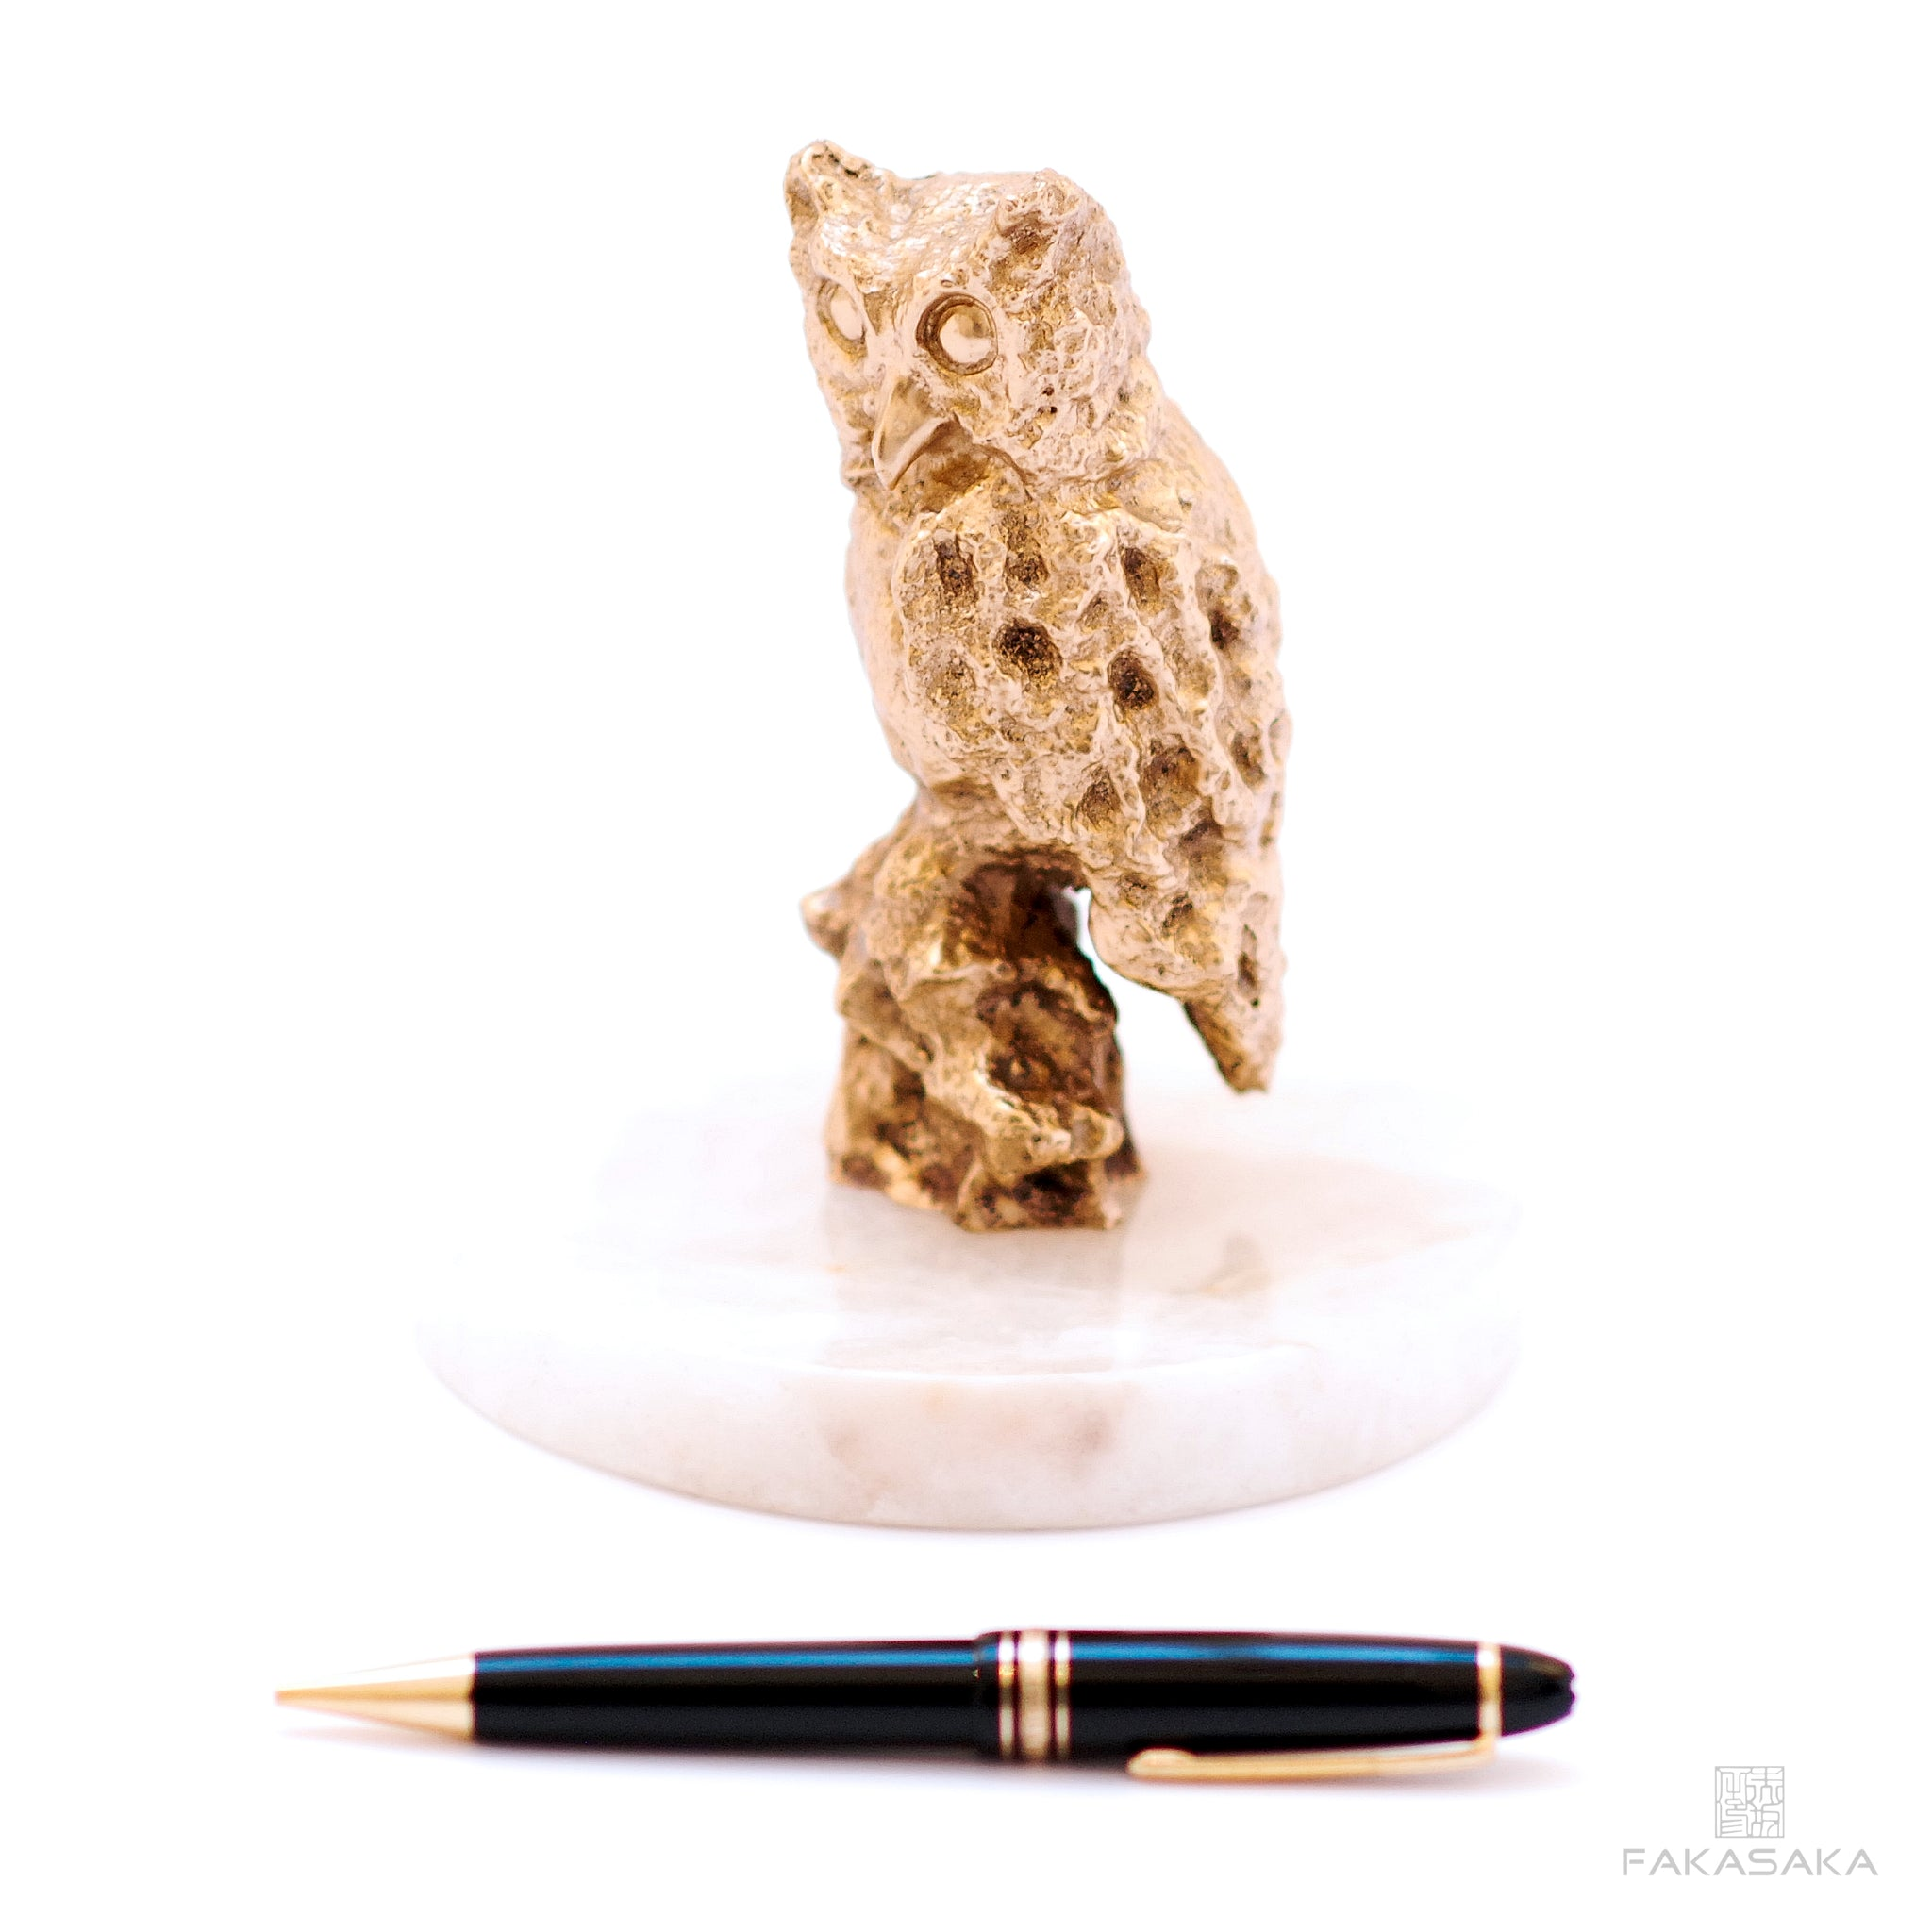 OWL SCULPTURE / PAPER WEIGHT<br><br>POLISHED BRONZE<br>ONYX BASE